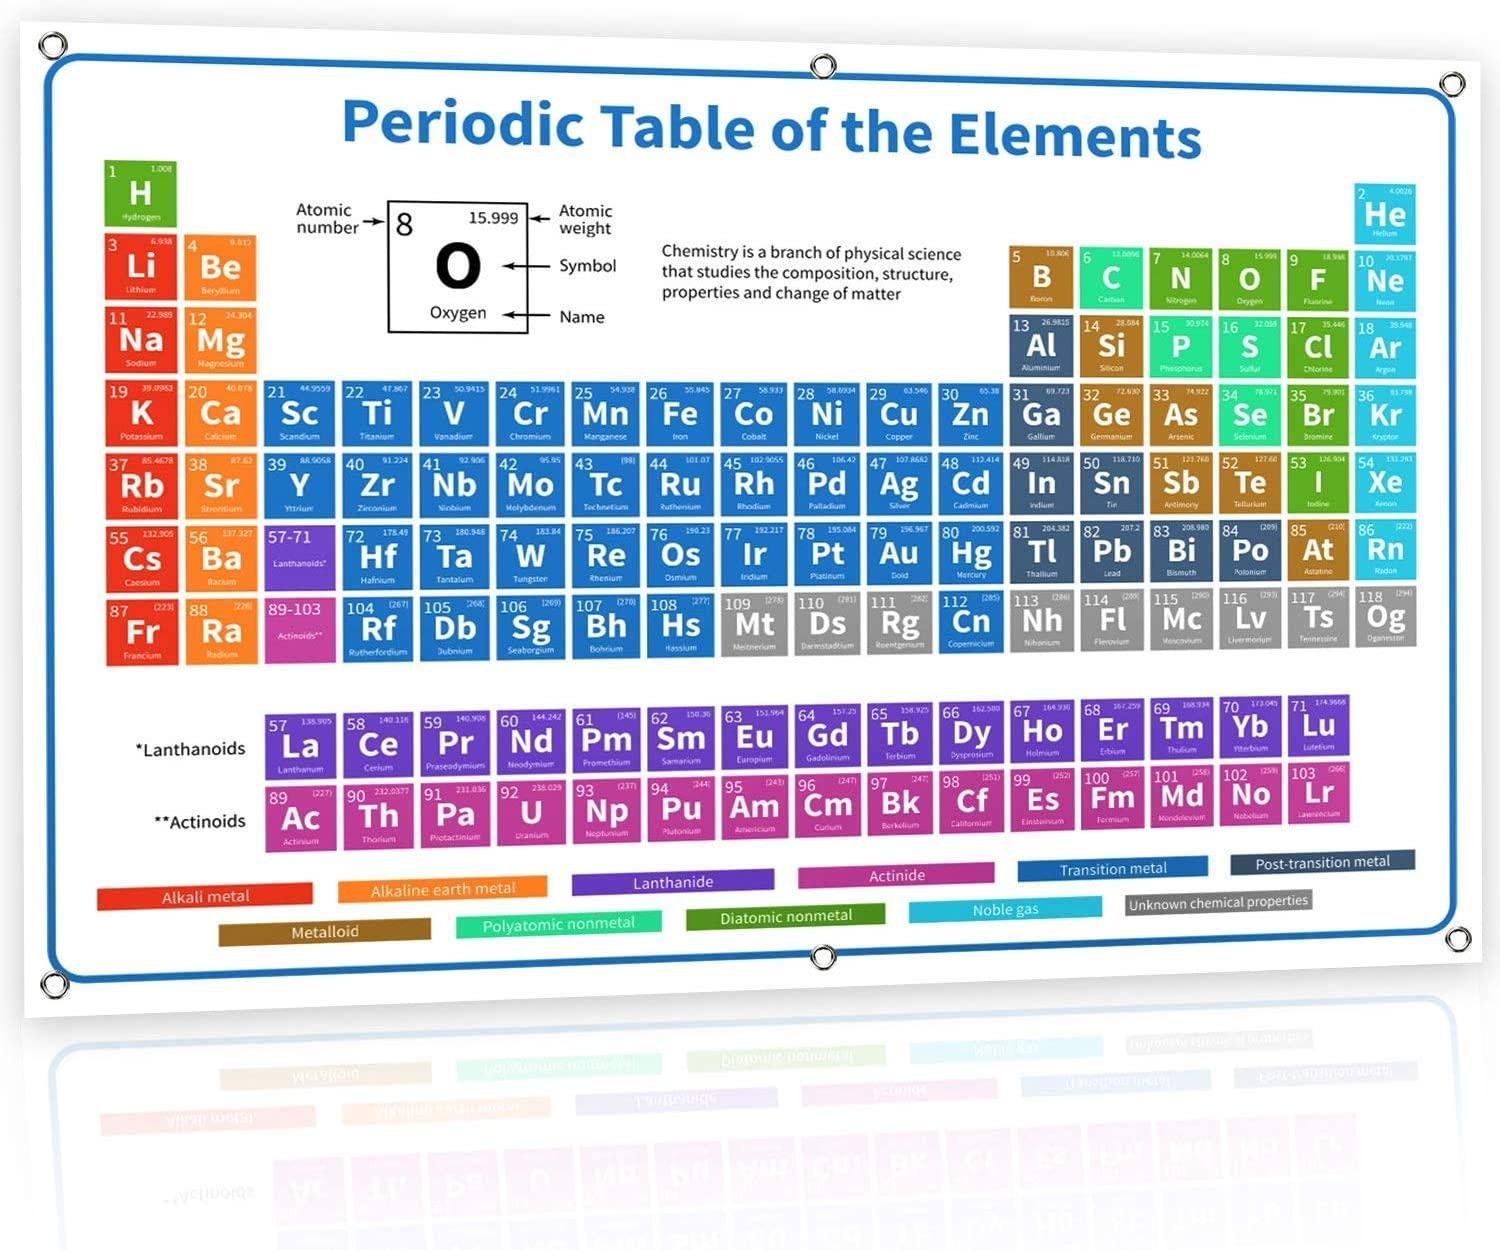 2021 8 Ft Periodic Table Poster of Elements Vinyl Poster - MEGA XL Large White Banner by Bigtime Signs - Science Chemistry Chart for Teachers, Students, Classroom - 118 Element Atomic Number Weight